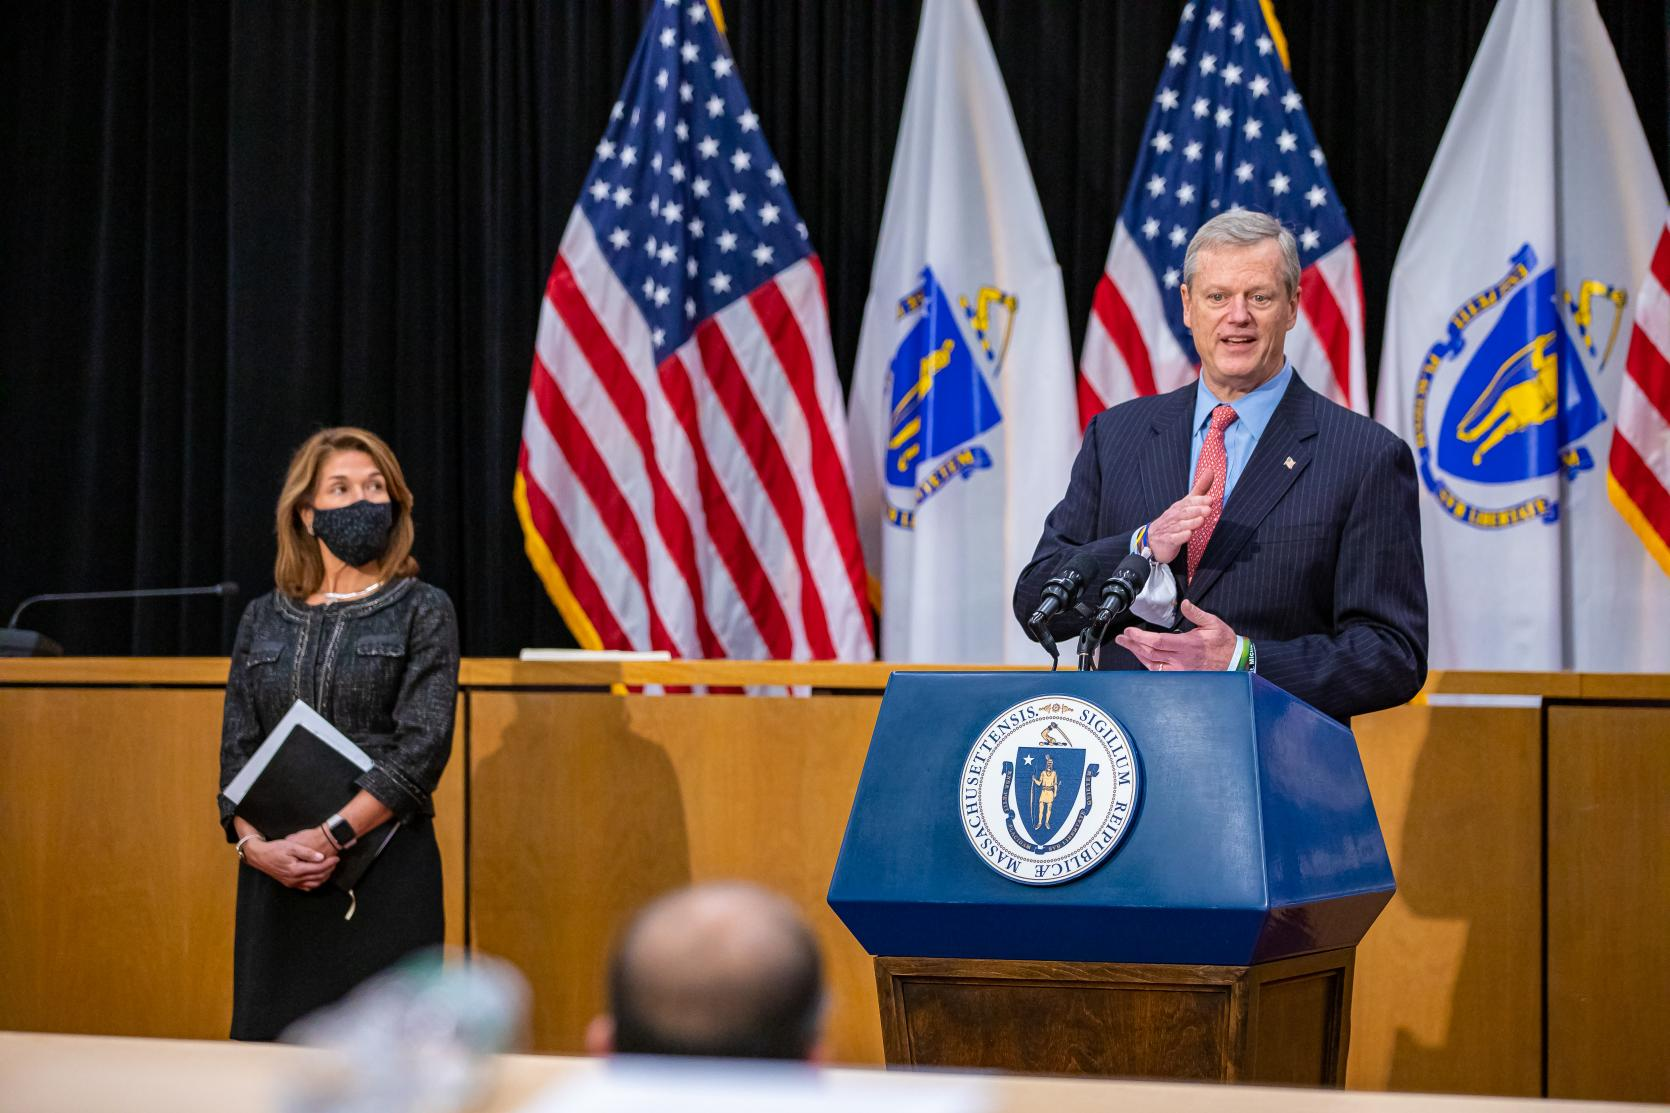 Baker-Polito Administration Announces Targeted Measures To Curb Rising COVID-19 Cases, Hospitalizations